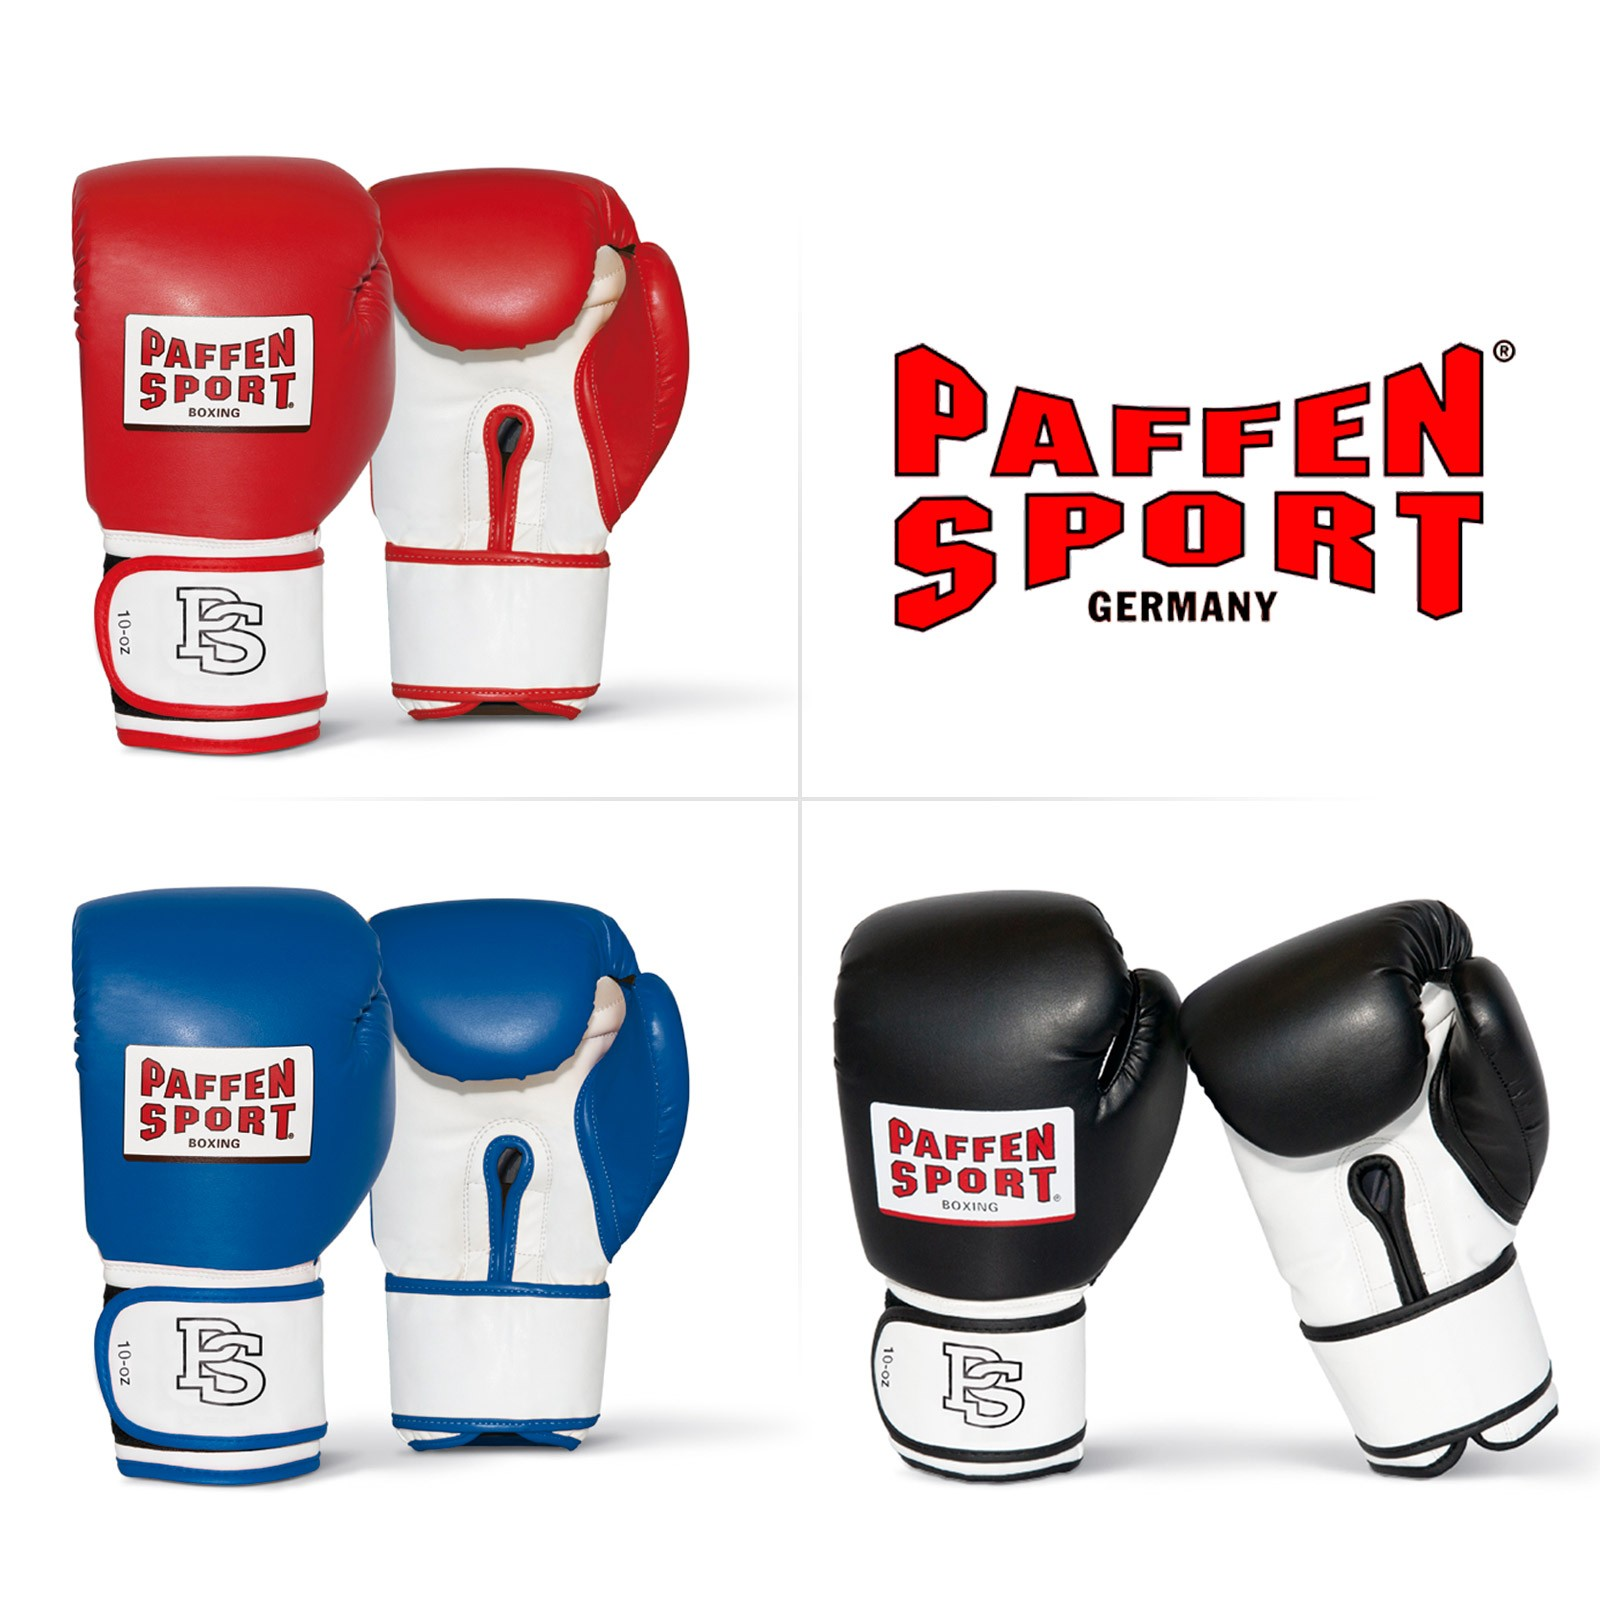 Paffen Sport Gloves Review: Paffen Sport Boxing Glove Fit Buy & Test